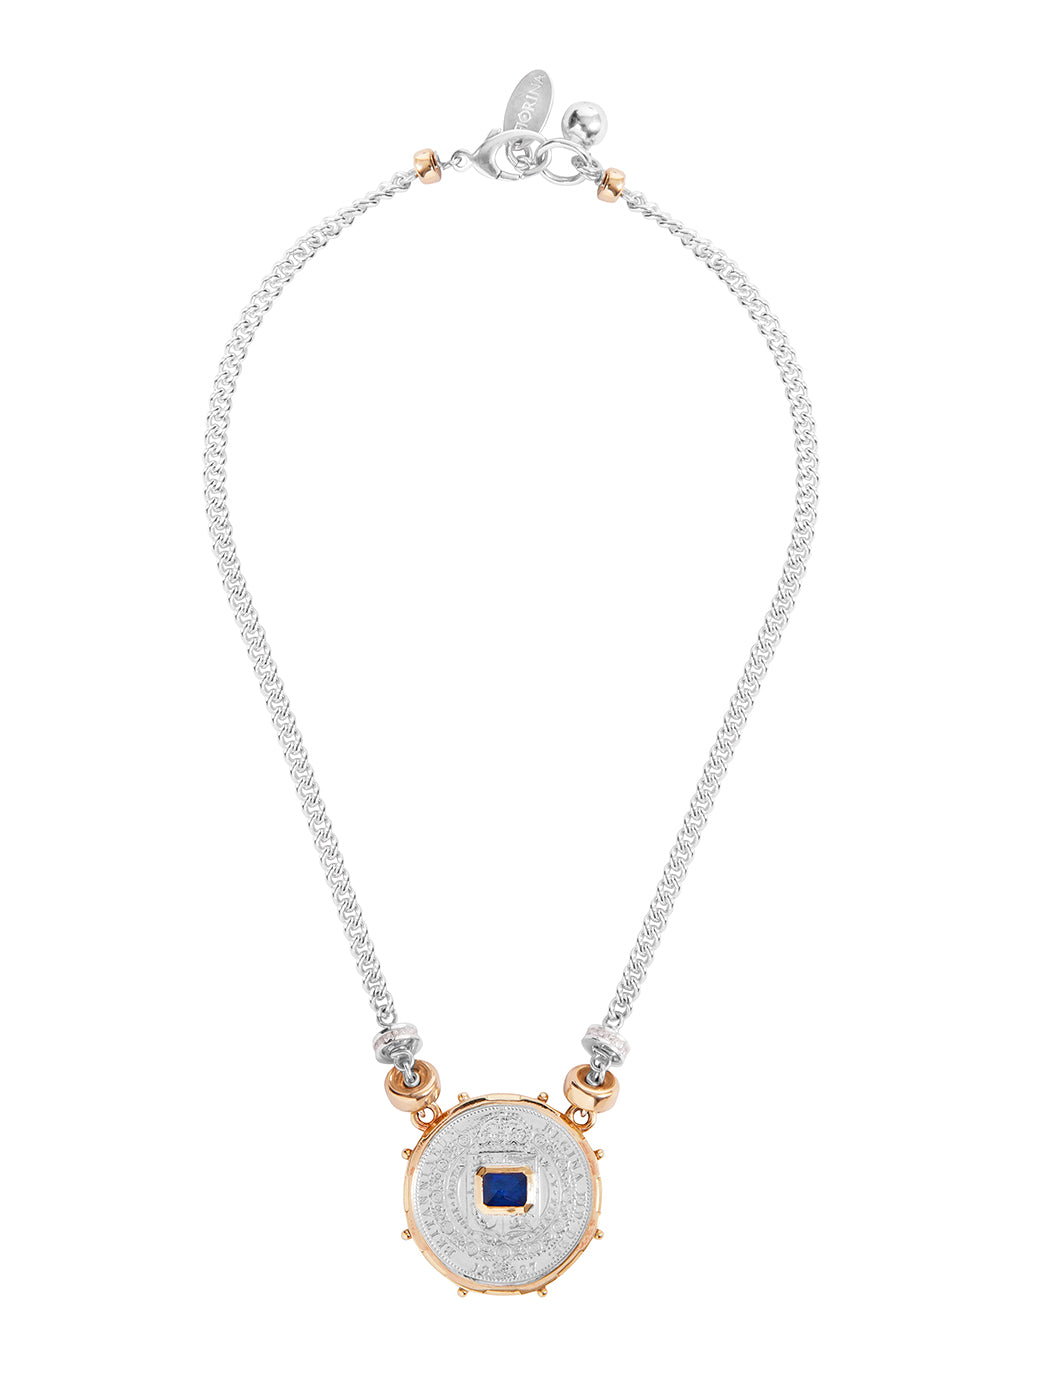 Fiorina Jewellery Medium Jewel Gem Necklace Blue Sapphire